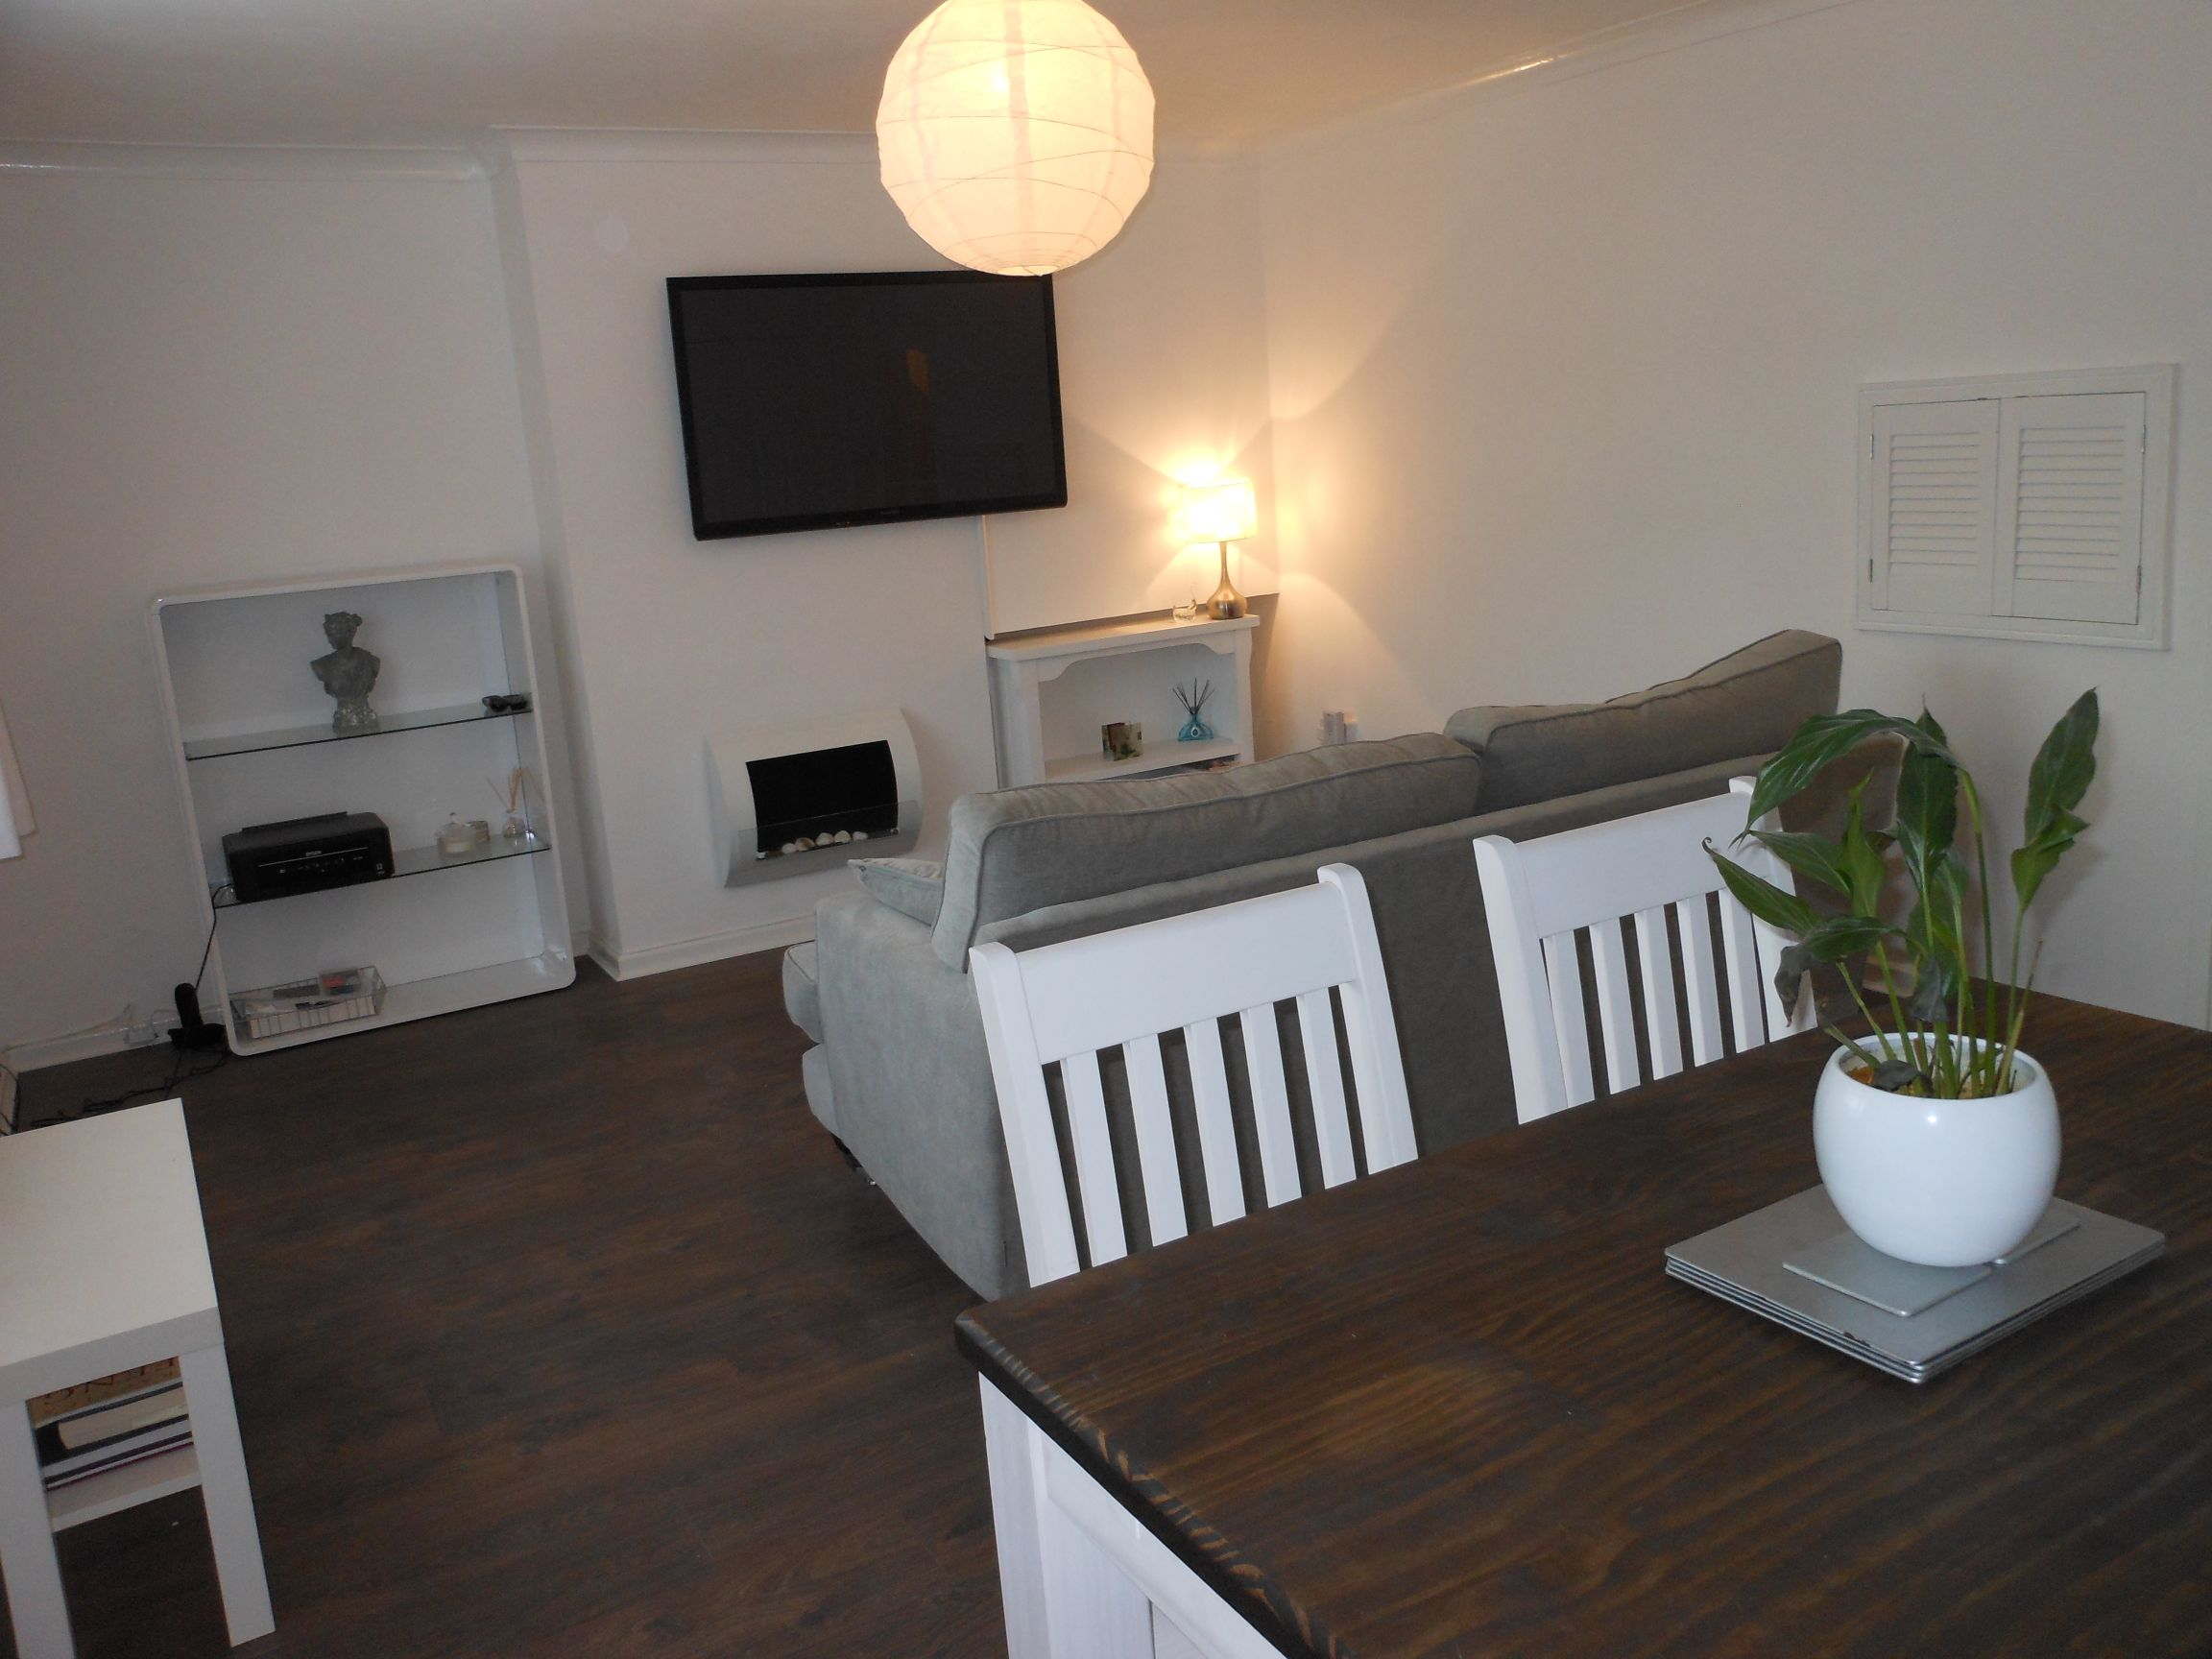 2 bedroom furnished flat with parking & courtyard, Eynesbury St Neots